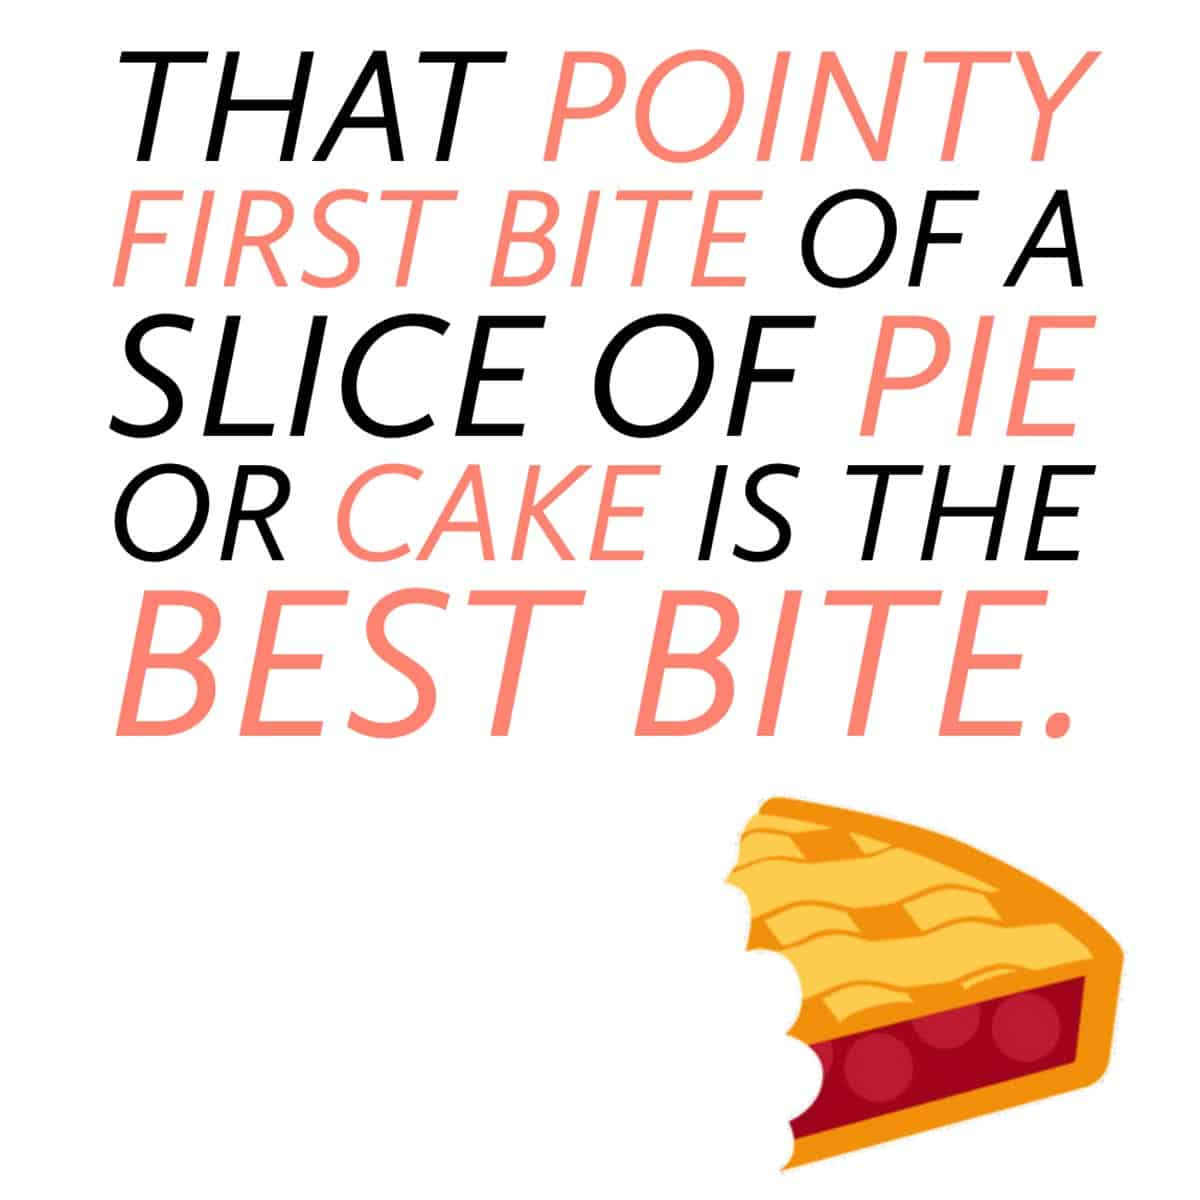 """graphic that reads: """"That pointy first bite of a slice of pie or cake is the best bite."""""""